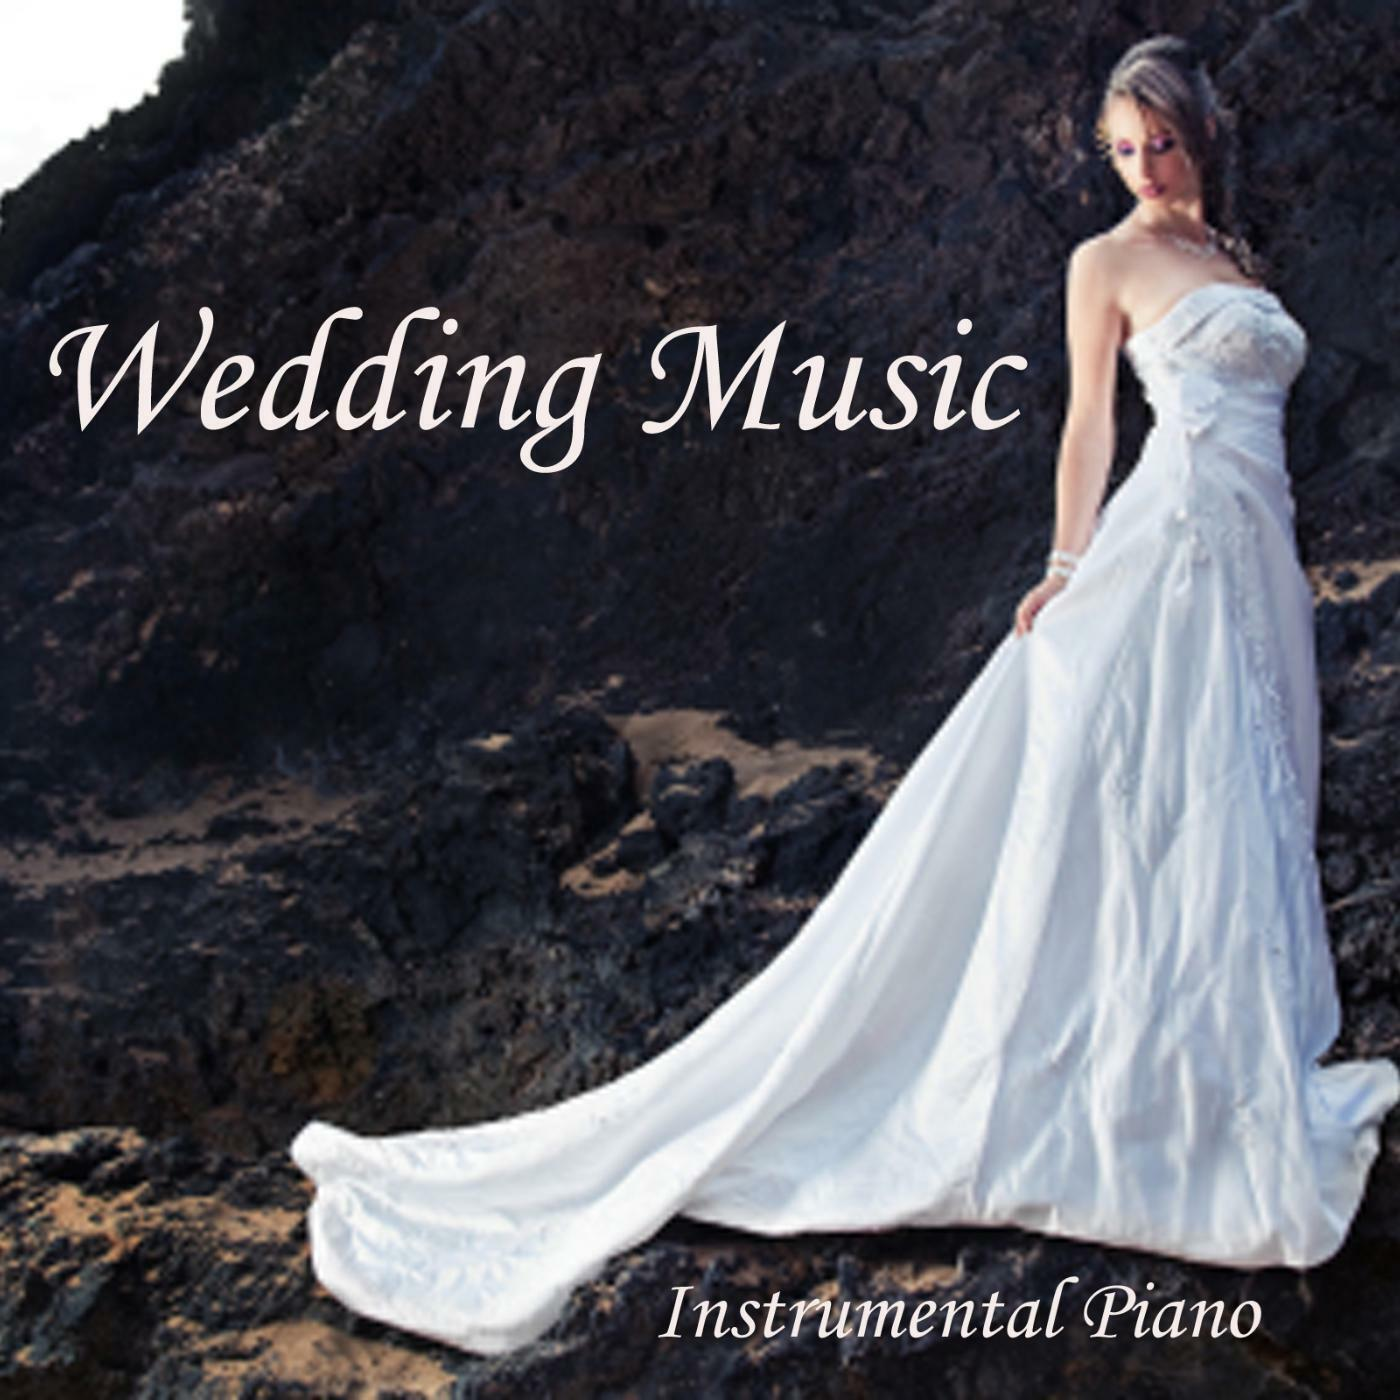 Listen Free To Instrumental Piano Music